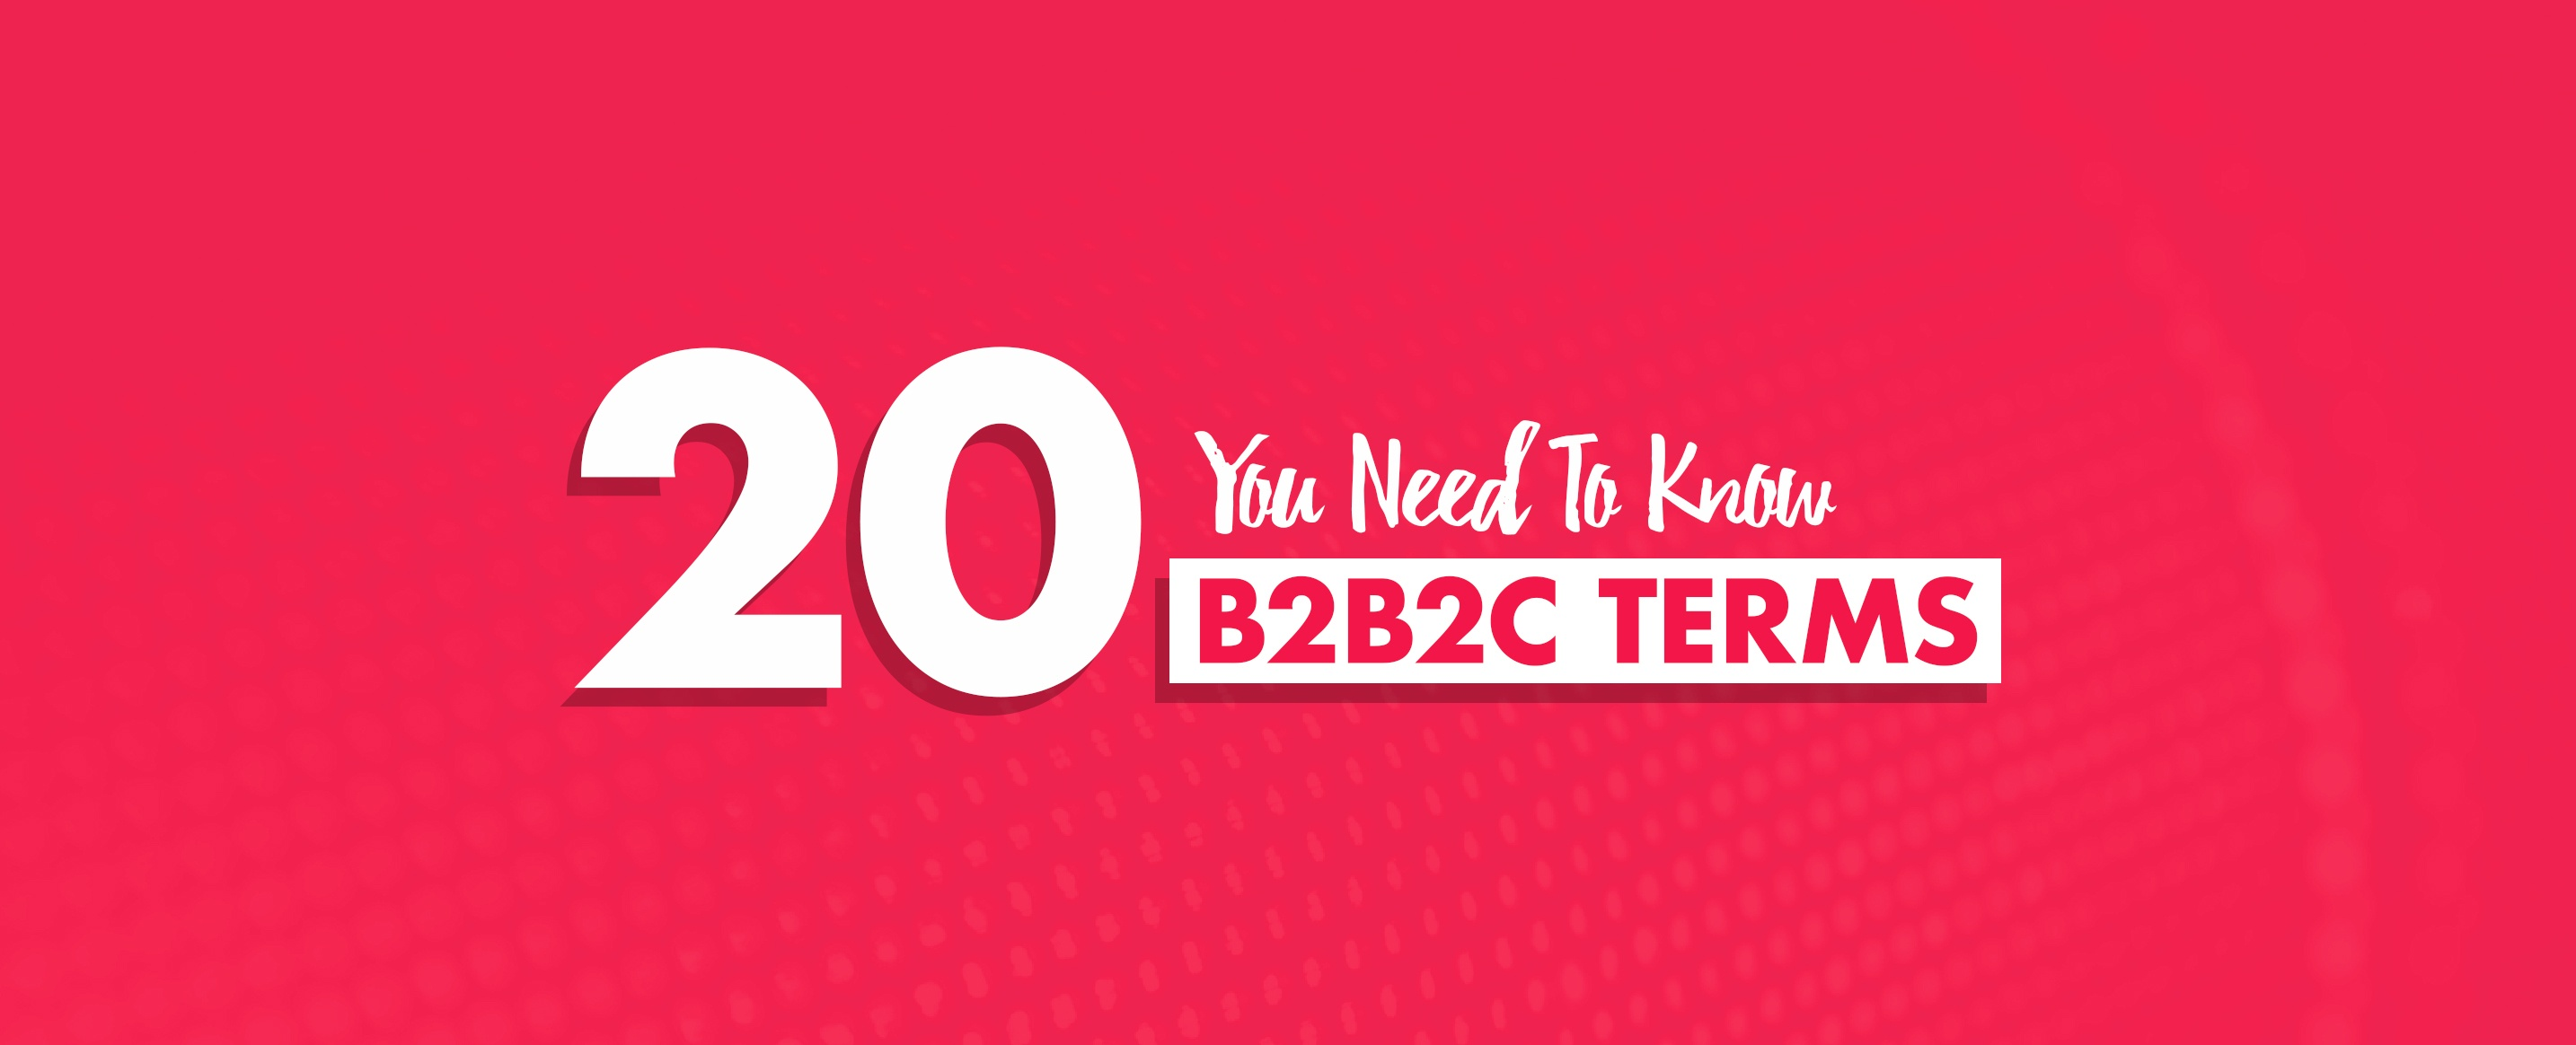 20-B2B2C-Terms-You-Need-To-Know